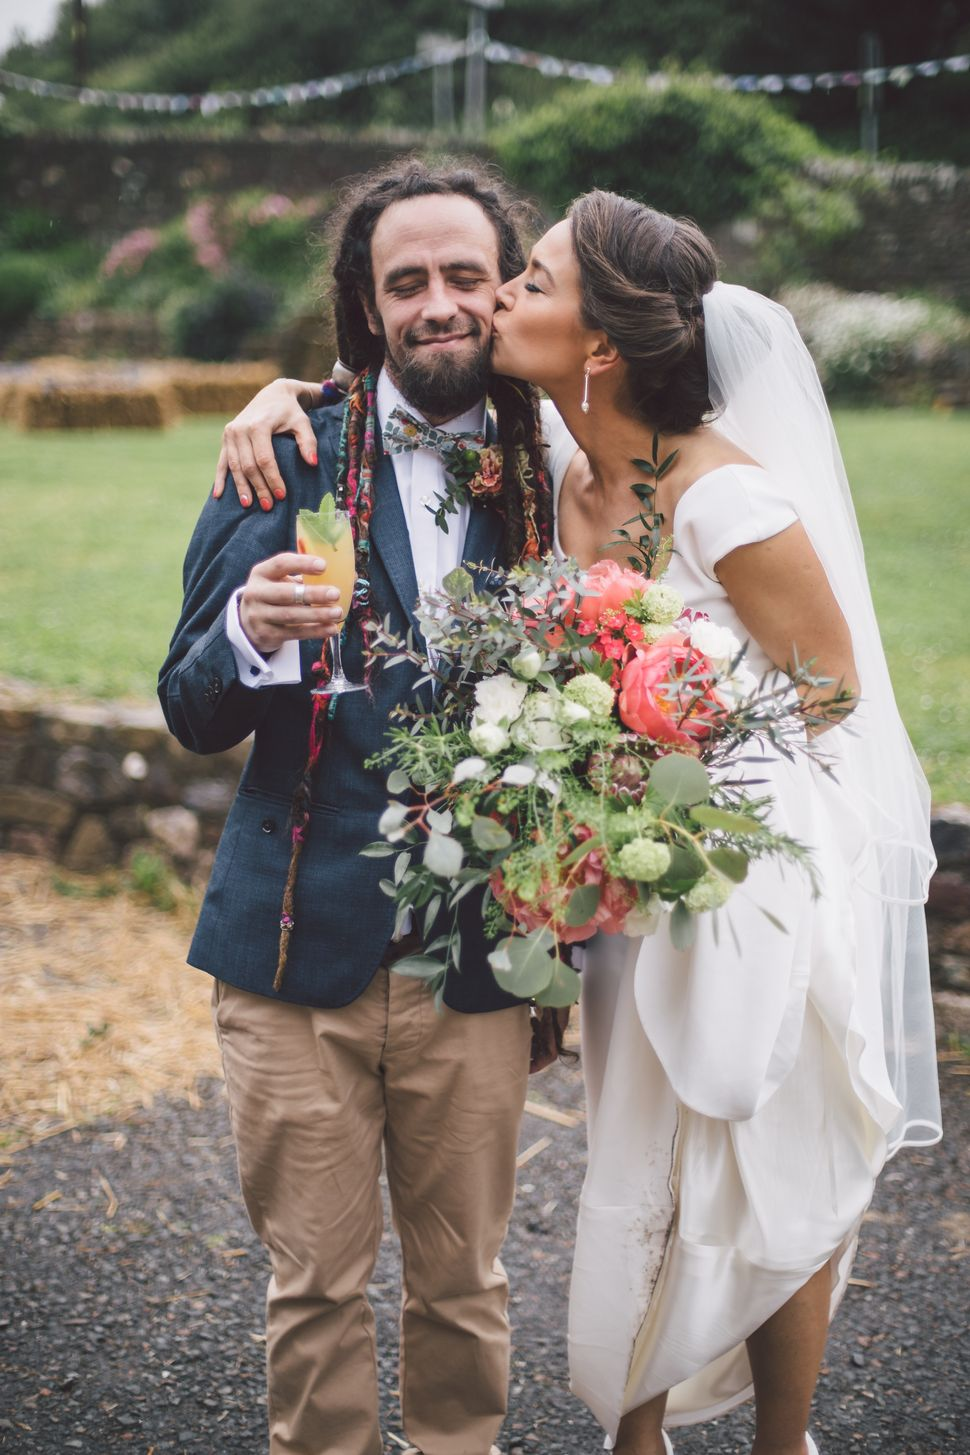 Amber Leach with her brother, Rod, at her wedding in Cornwall in May 2016.